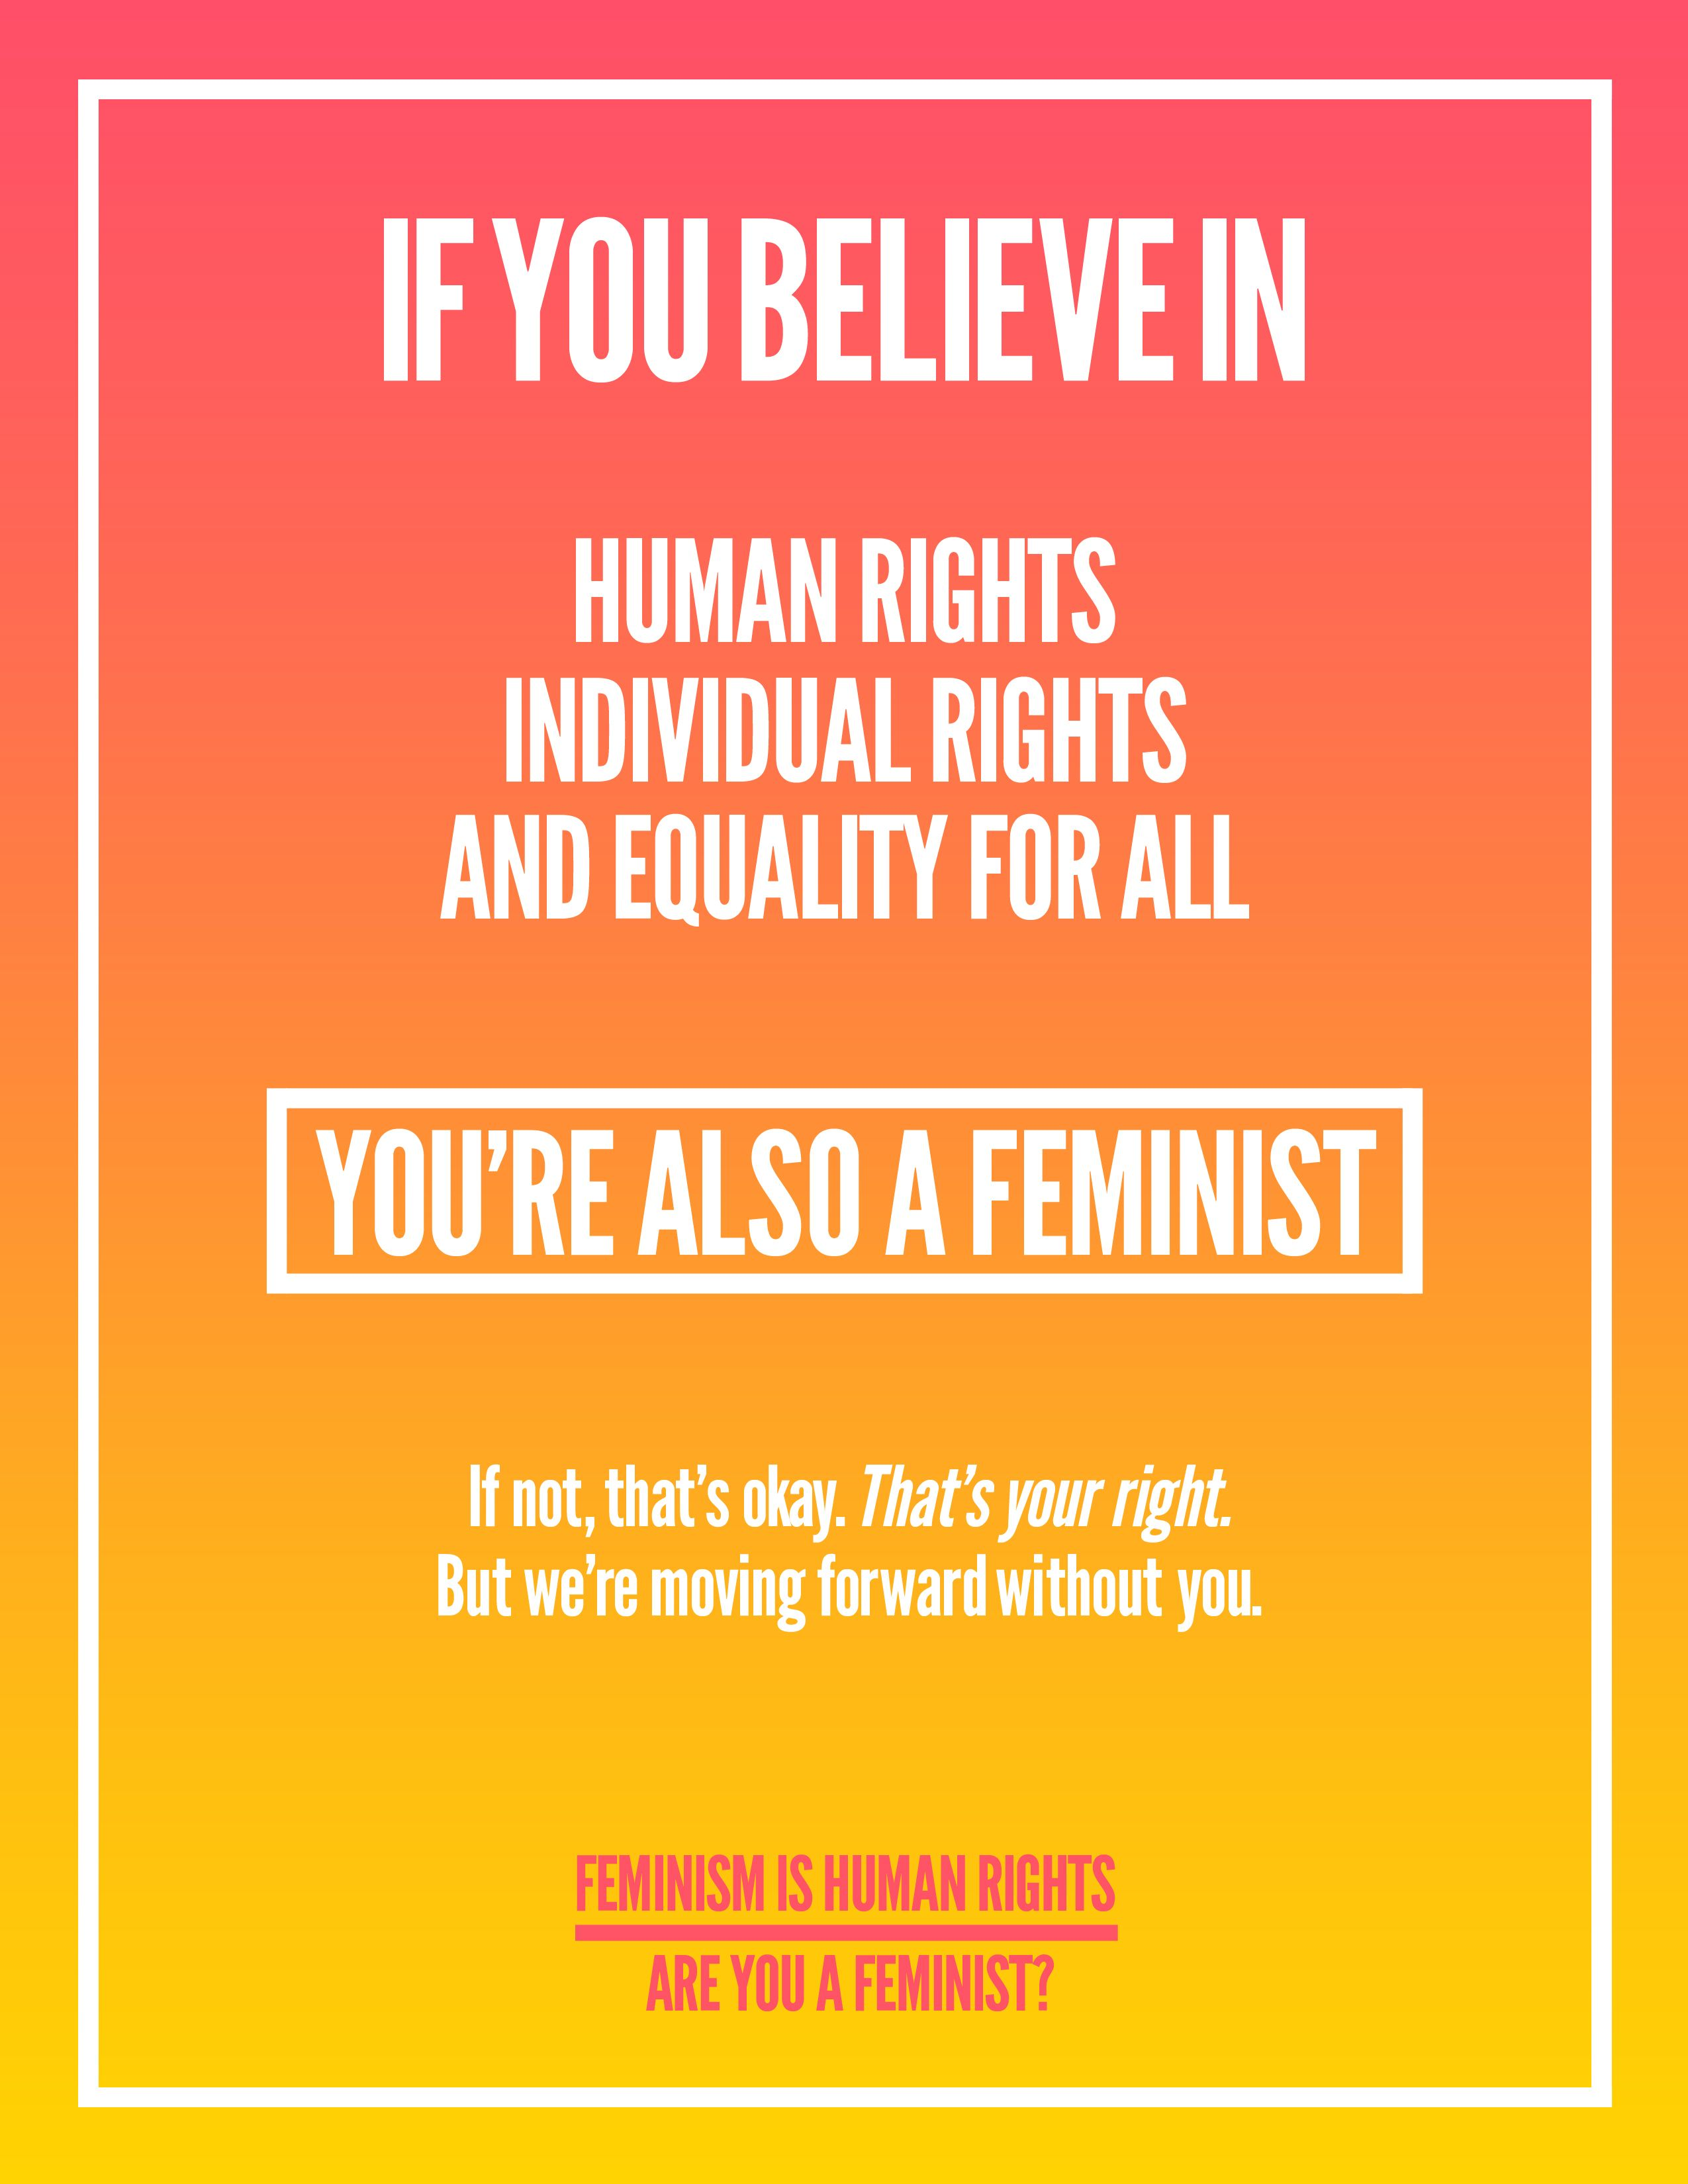 pin by miriam langsam on advertising — print | pinterest | feminism